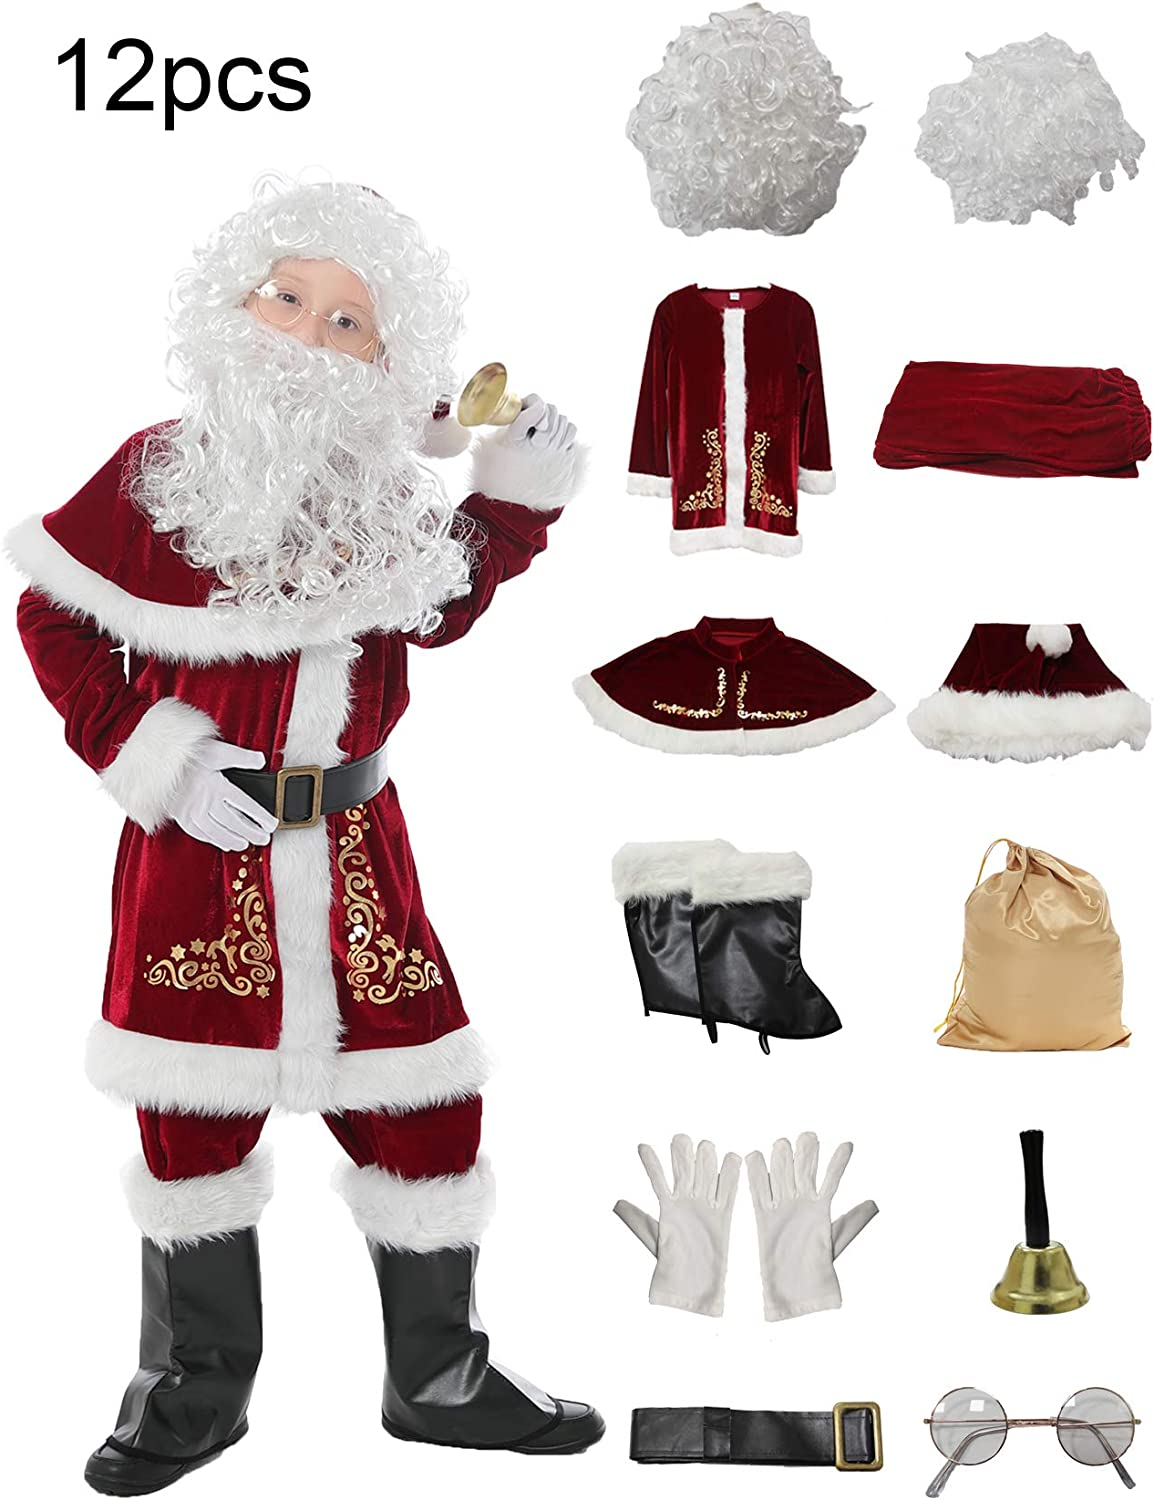 Halfjuly Santa Costume for Kids 12pcs Set Christmas Party Santa Claus Suit for Boys Red Deluxe Velvet Child Cosplay